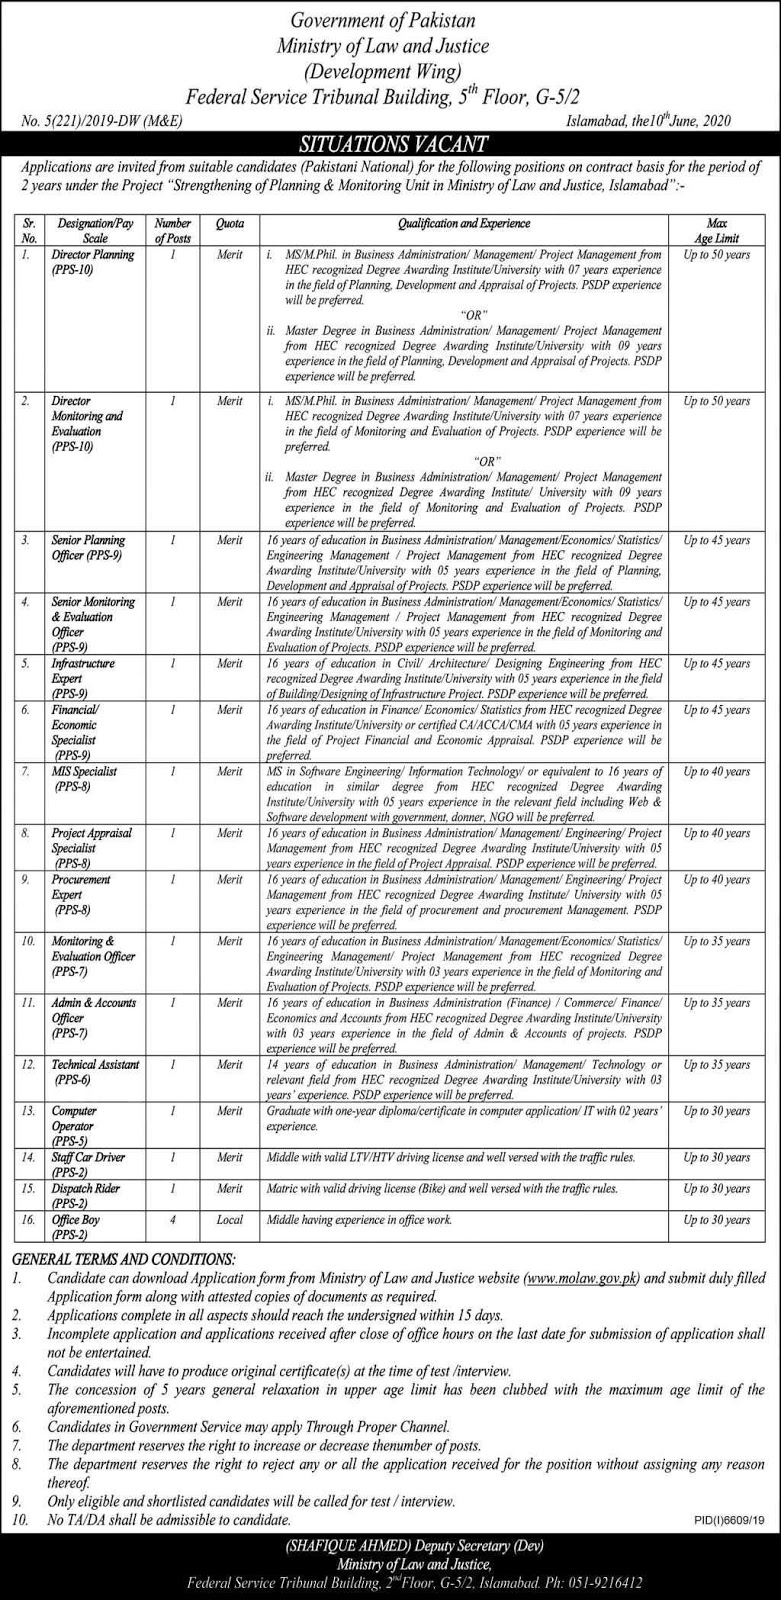 Development Wing Ministry of Law & Justice Islamabad Jobs 2020